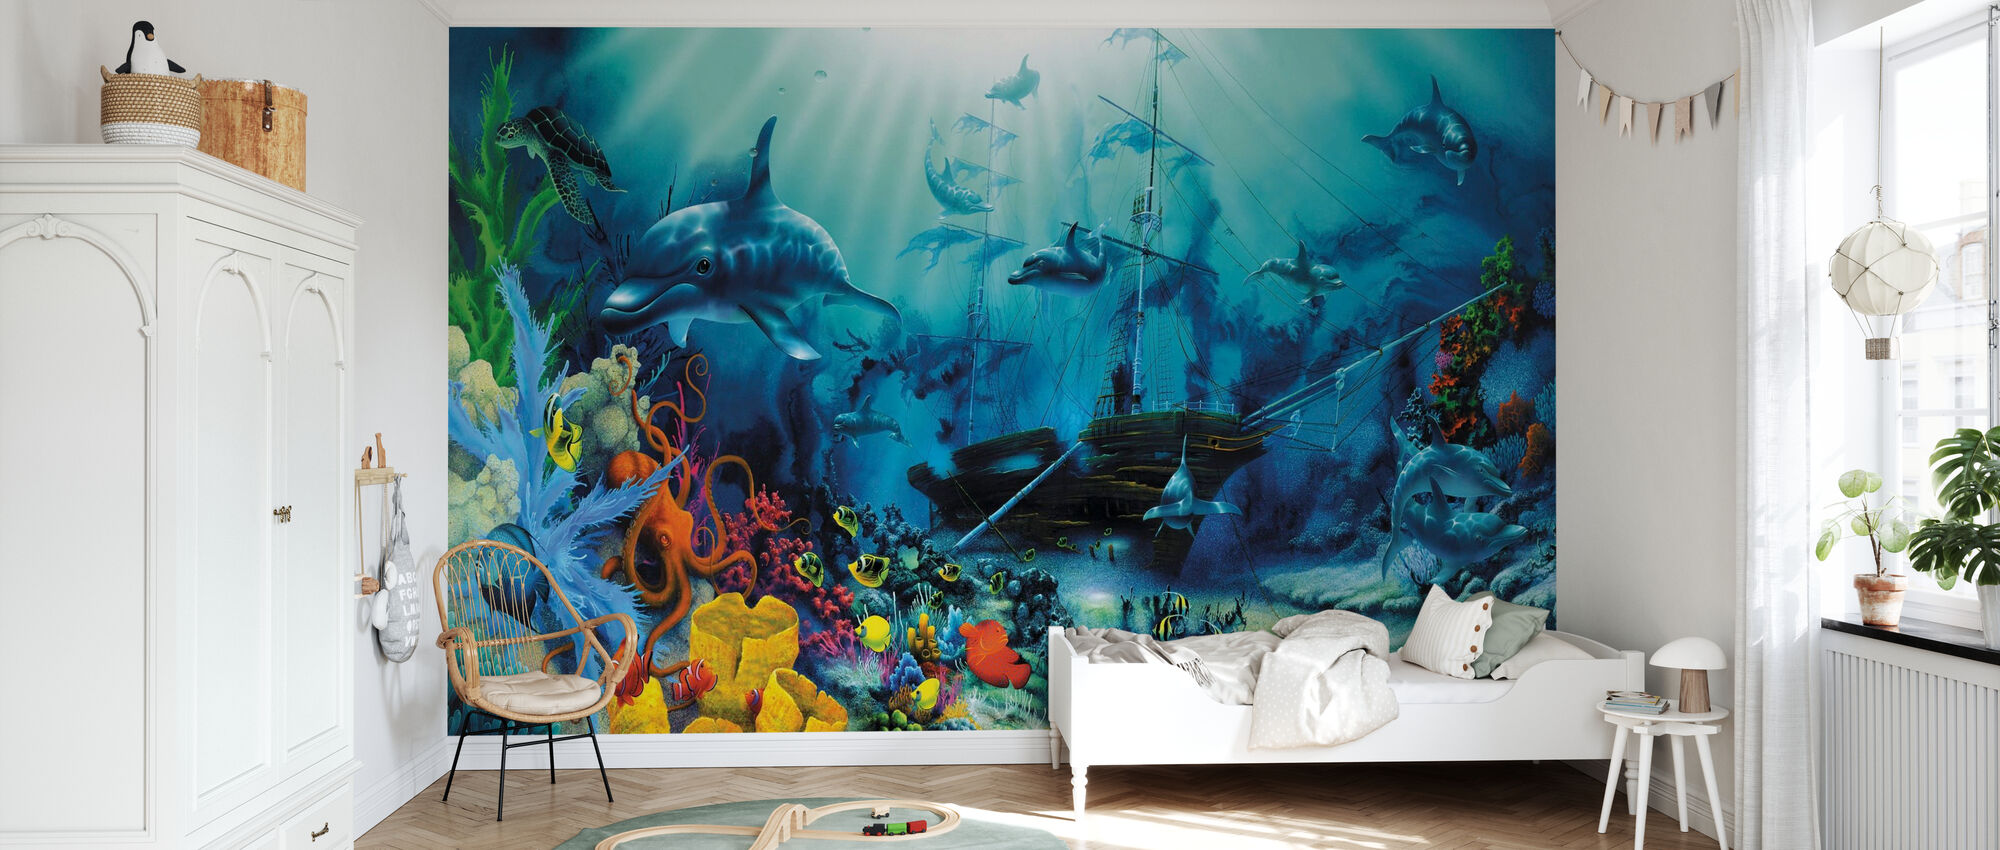 Ocean Treasures - Wallpaper - Kids Room